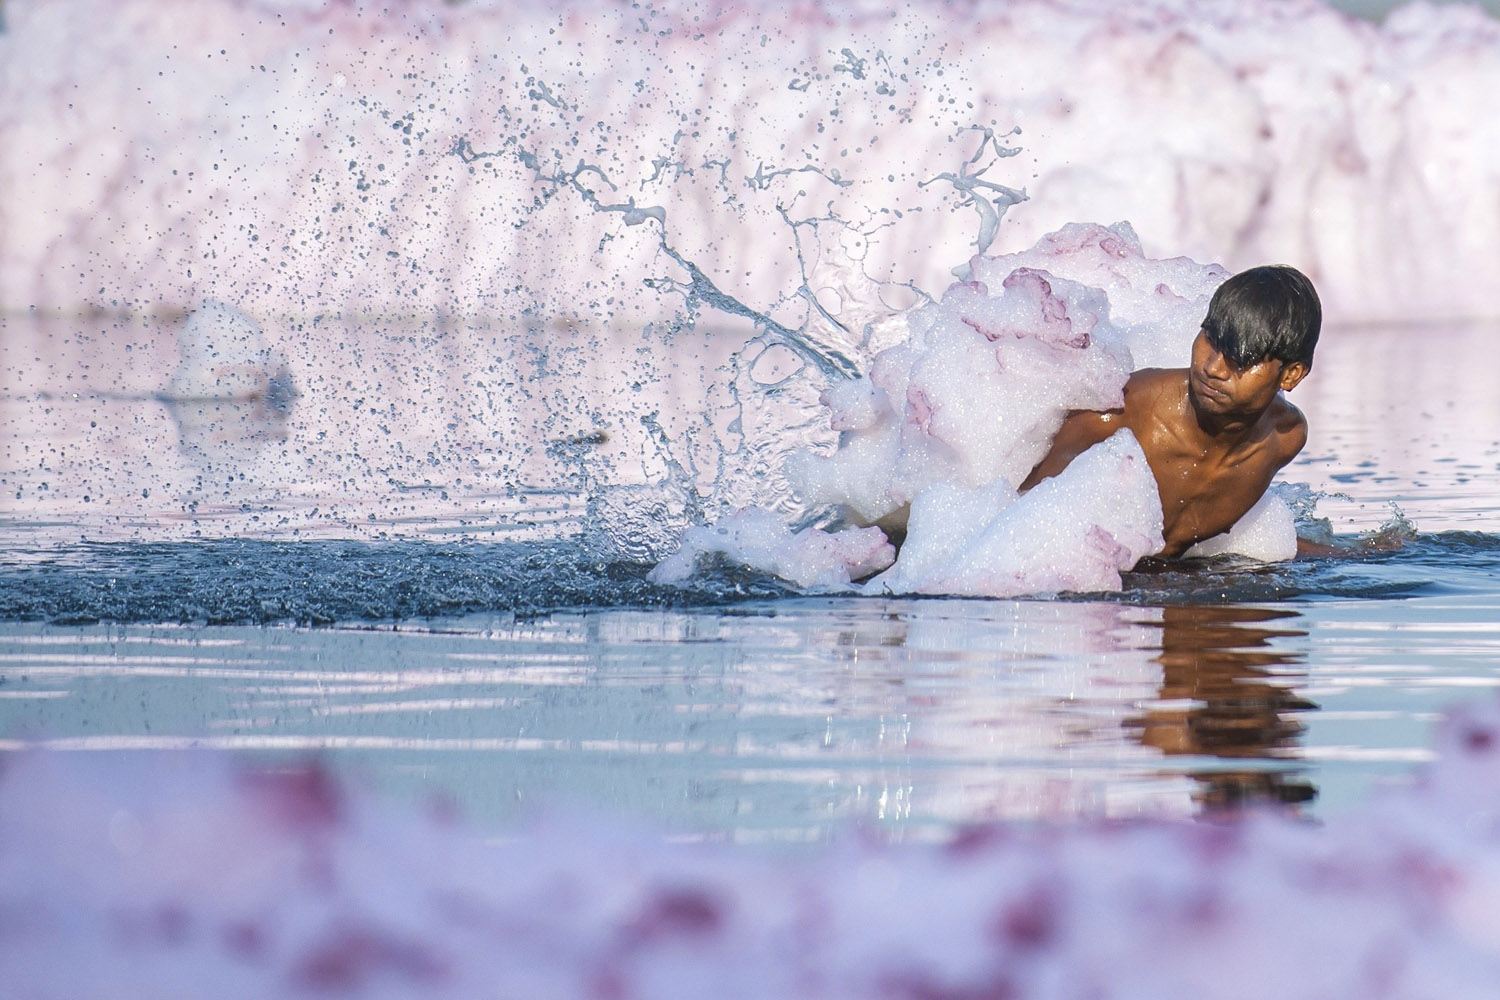 Mar. 19, 2014.  A man tries to get rid of a thick layer of flowing foam as he takes a bath in river Yamuna in New Delhi, India, which is often described as the most polluted body of water in northern India.